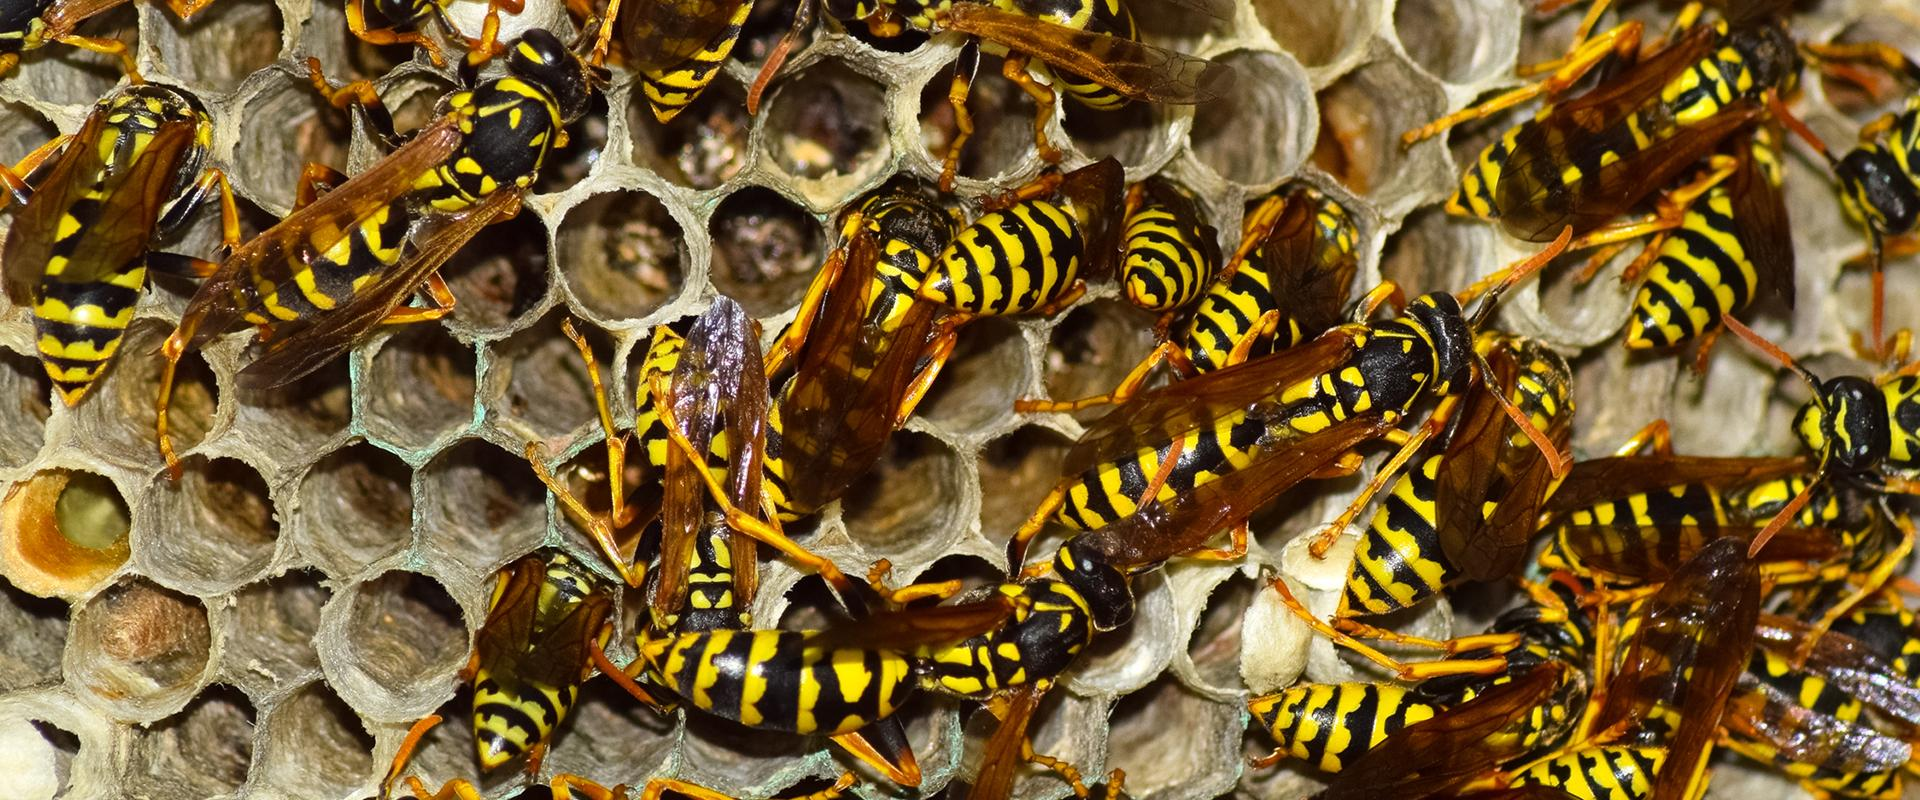 stinging insects on wasp nest